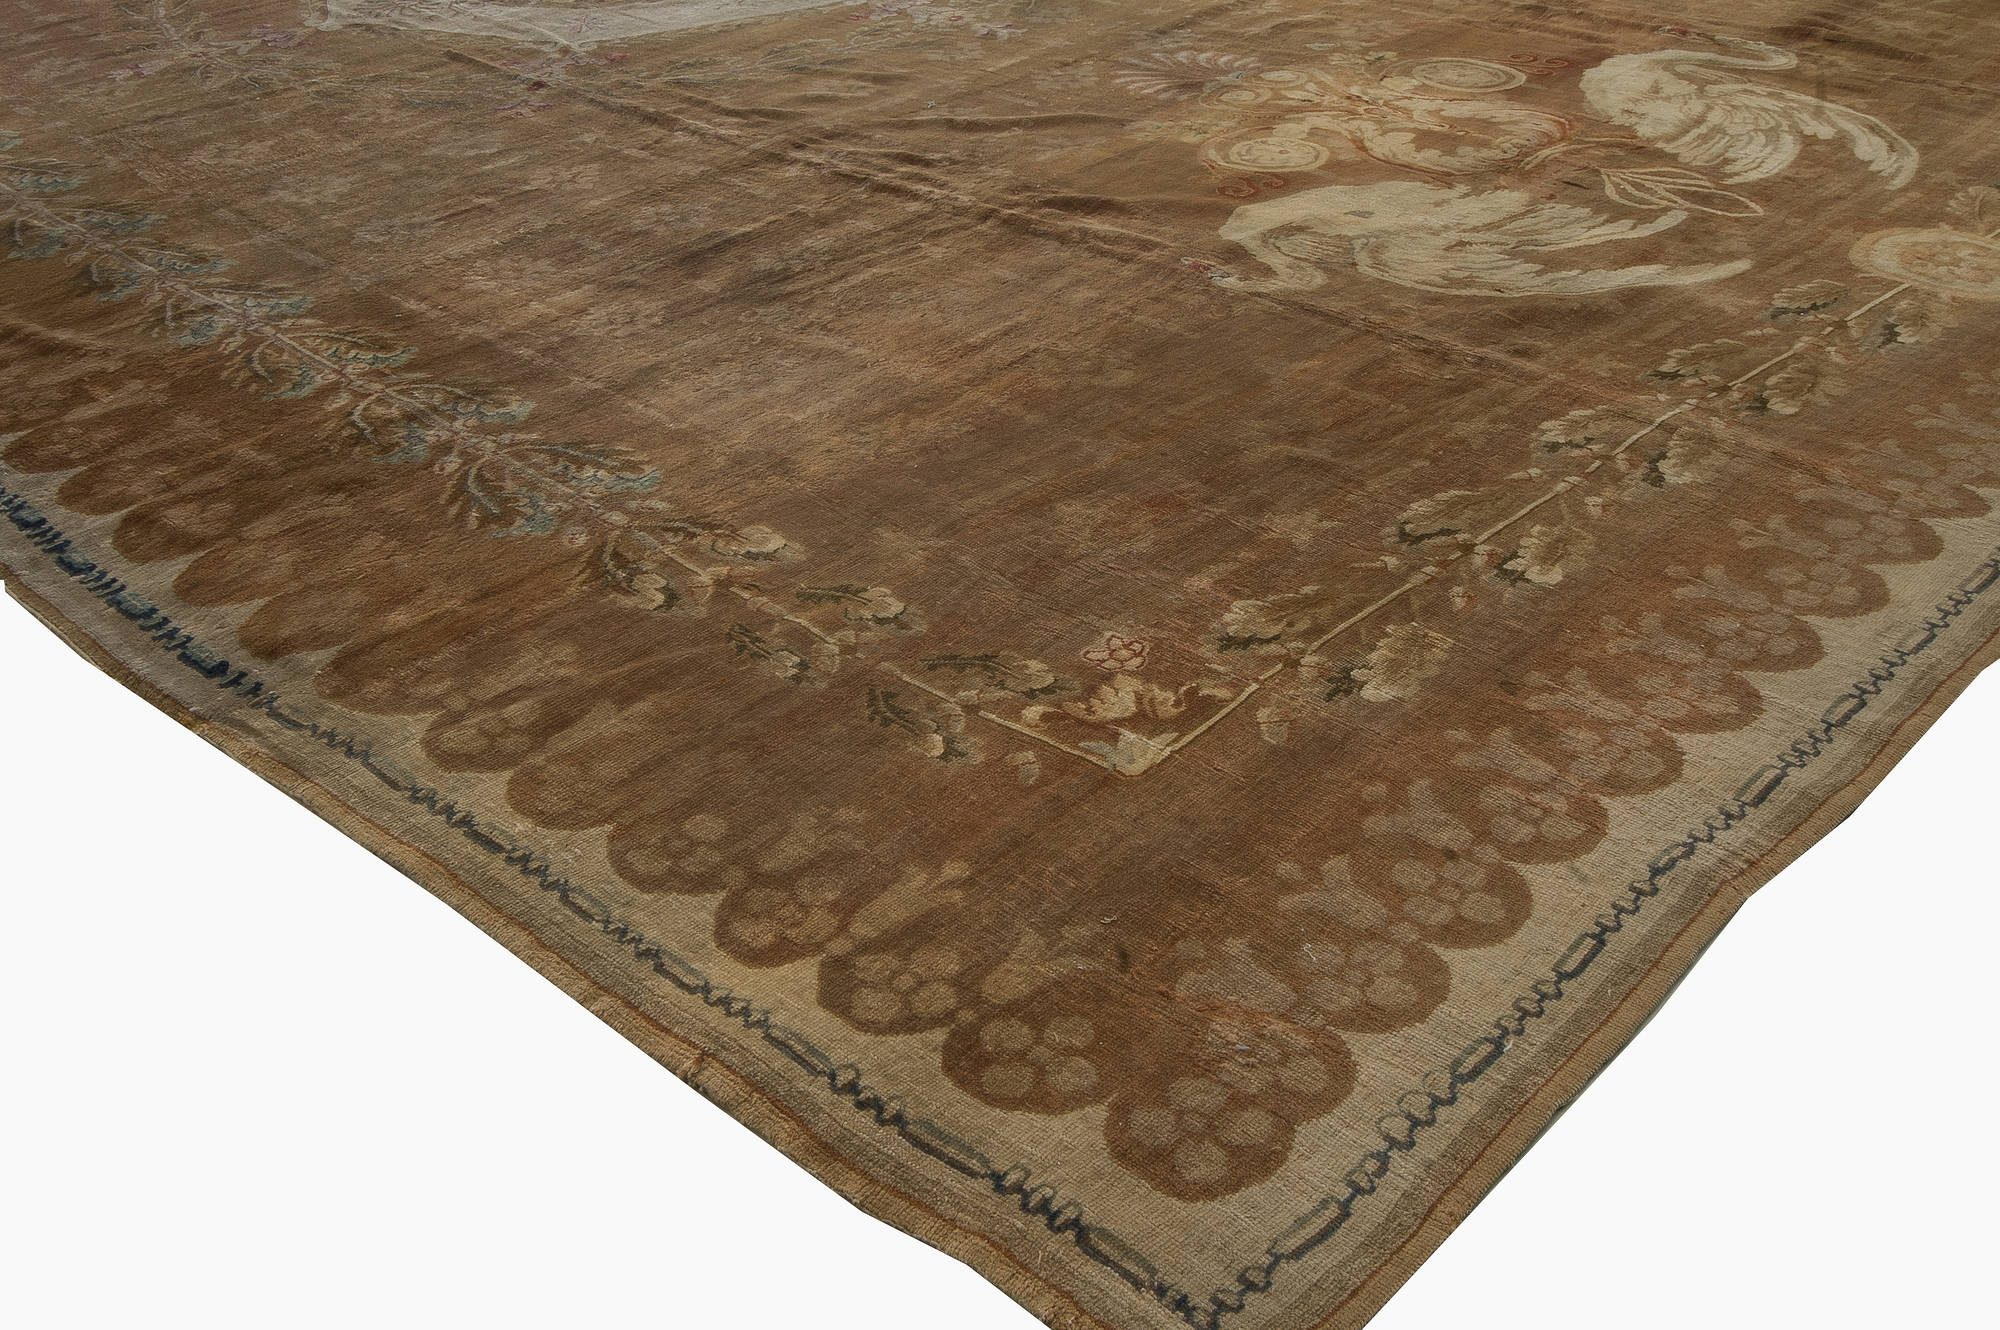 Oversized Antique French Directoire Savonnerie Carpet BB5178